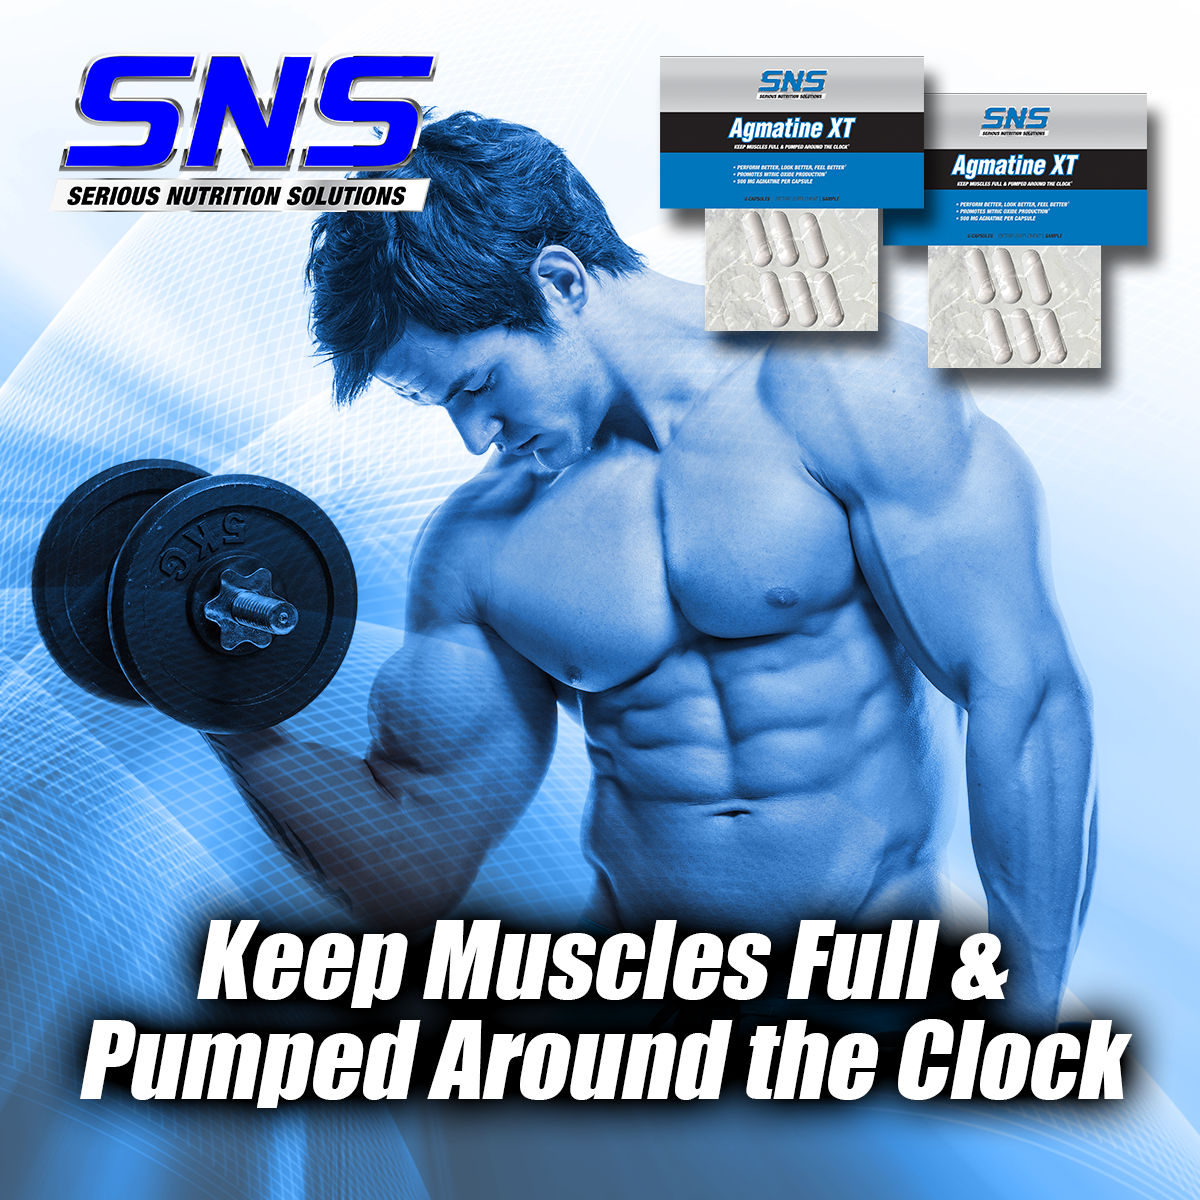 SNS GlycoPhase Turns Carbs into Gym-Smashing Pumps